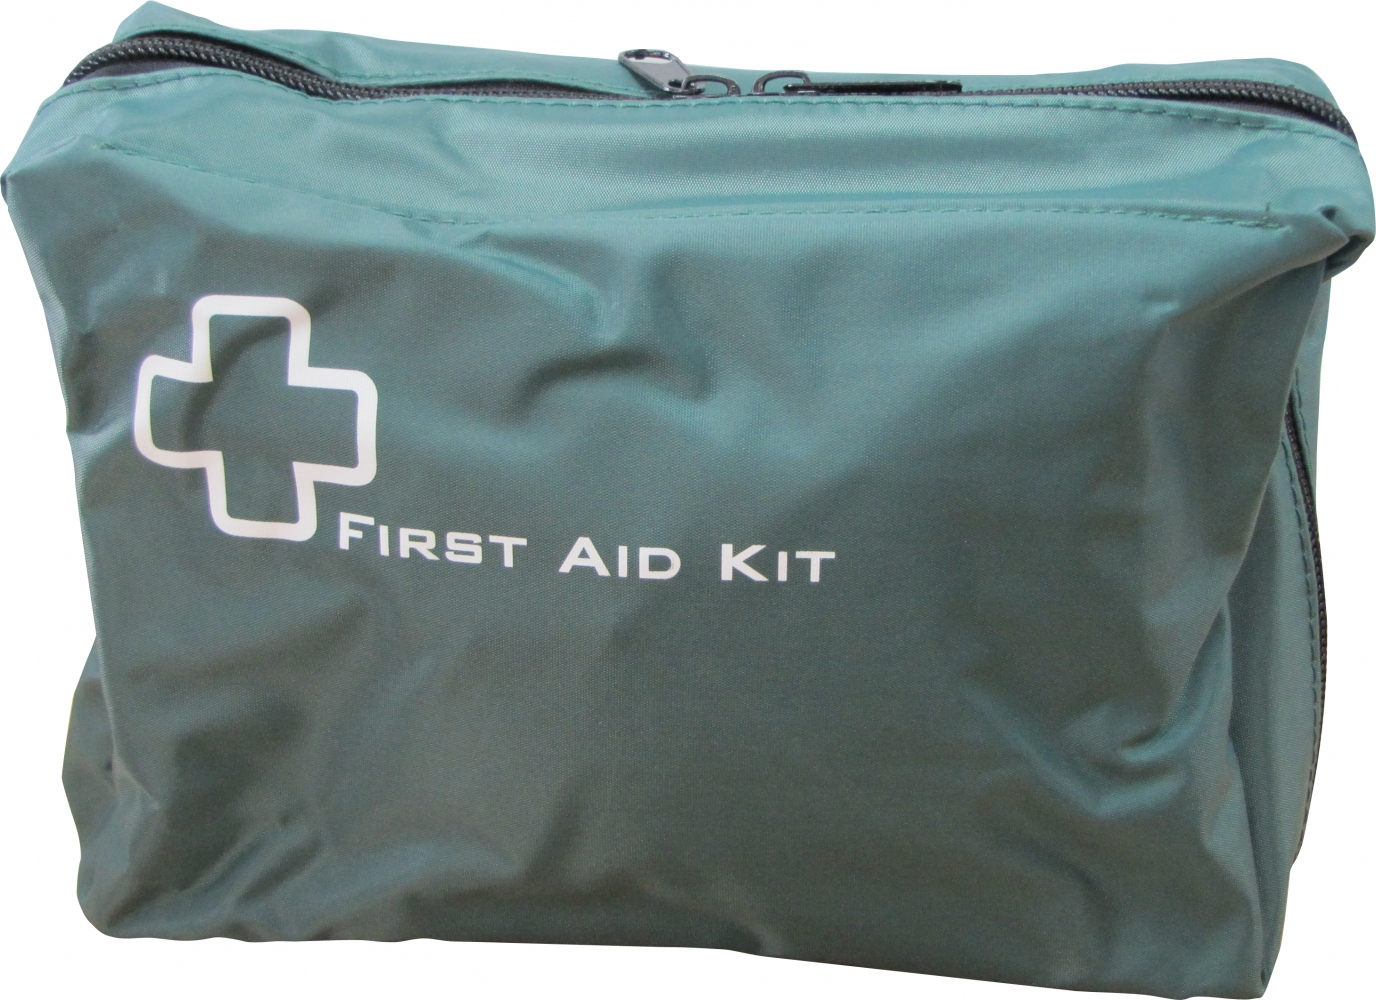 First Aid Kit Auto Amp Rec Soft Bag Arnold Products Limited